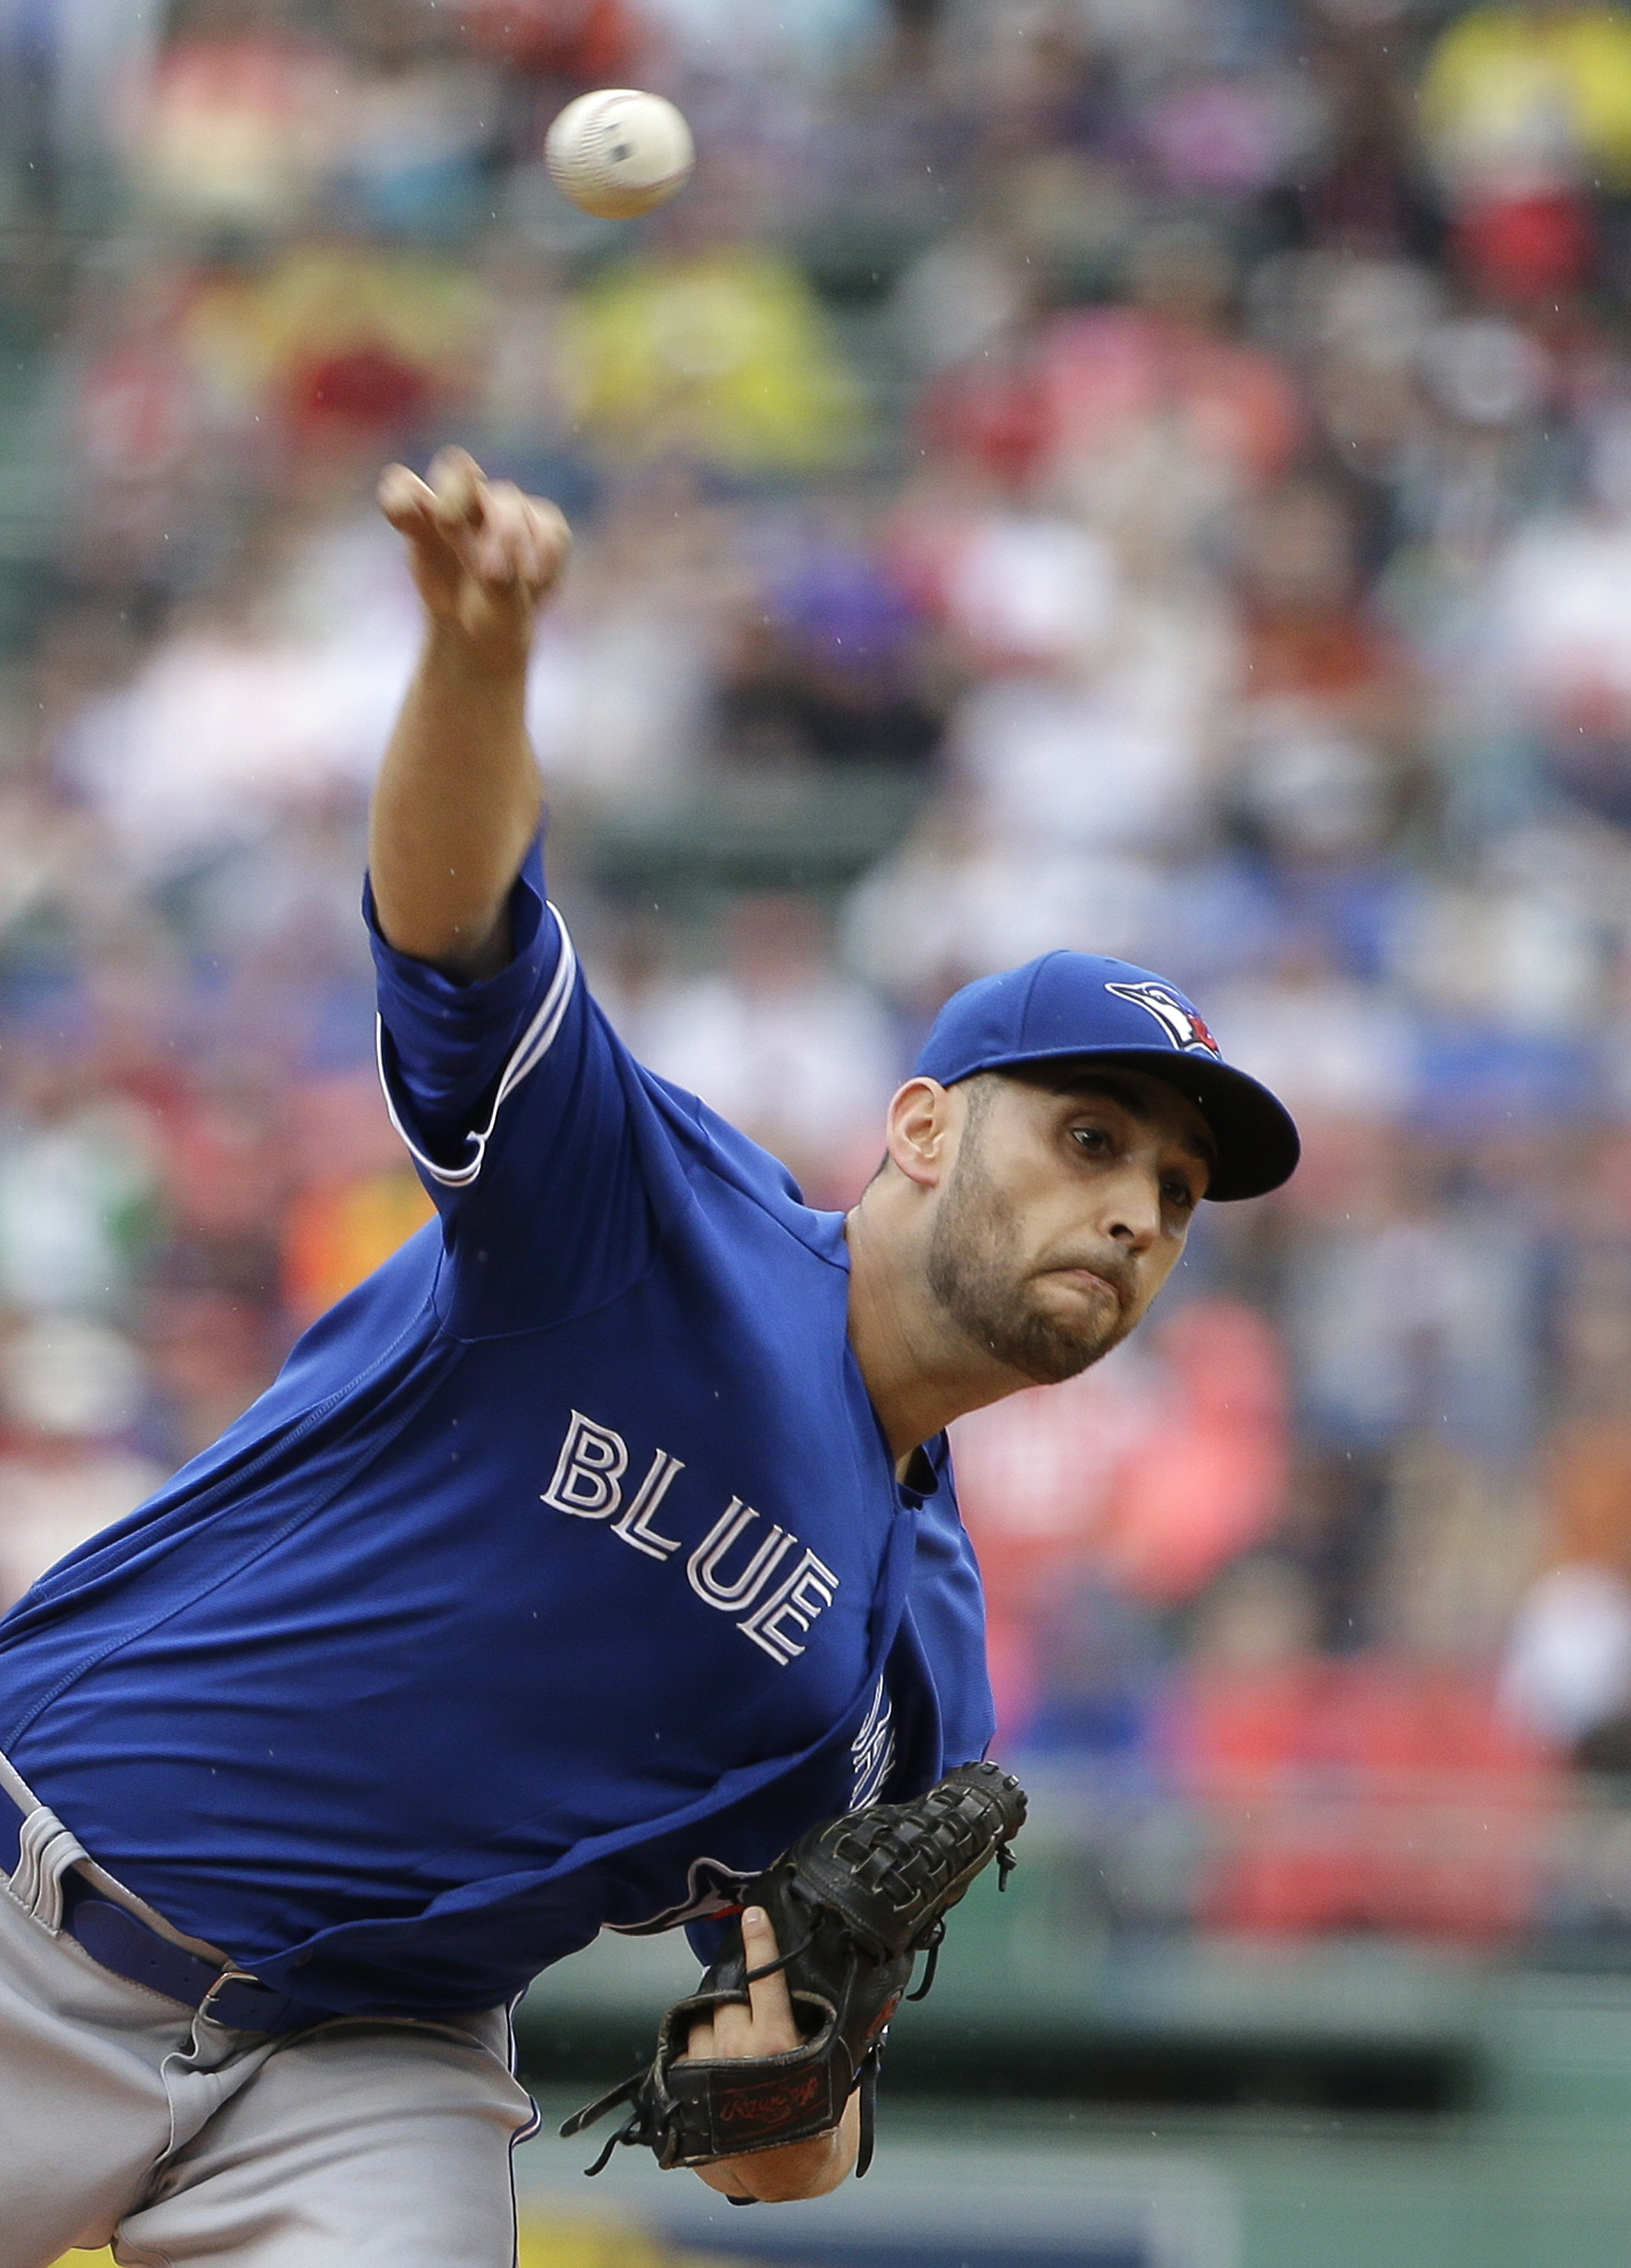 Toronto Blue Jays' Marco Estrada delivers a pitch against the Boston Red Sox in the first inning of a baseball game, Sunday, June 5, 2016, in Boston. (AP Photo/Steven Senne)